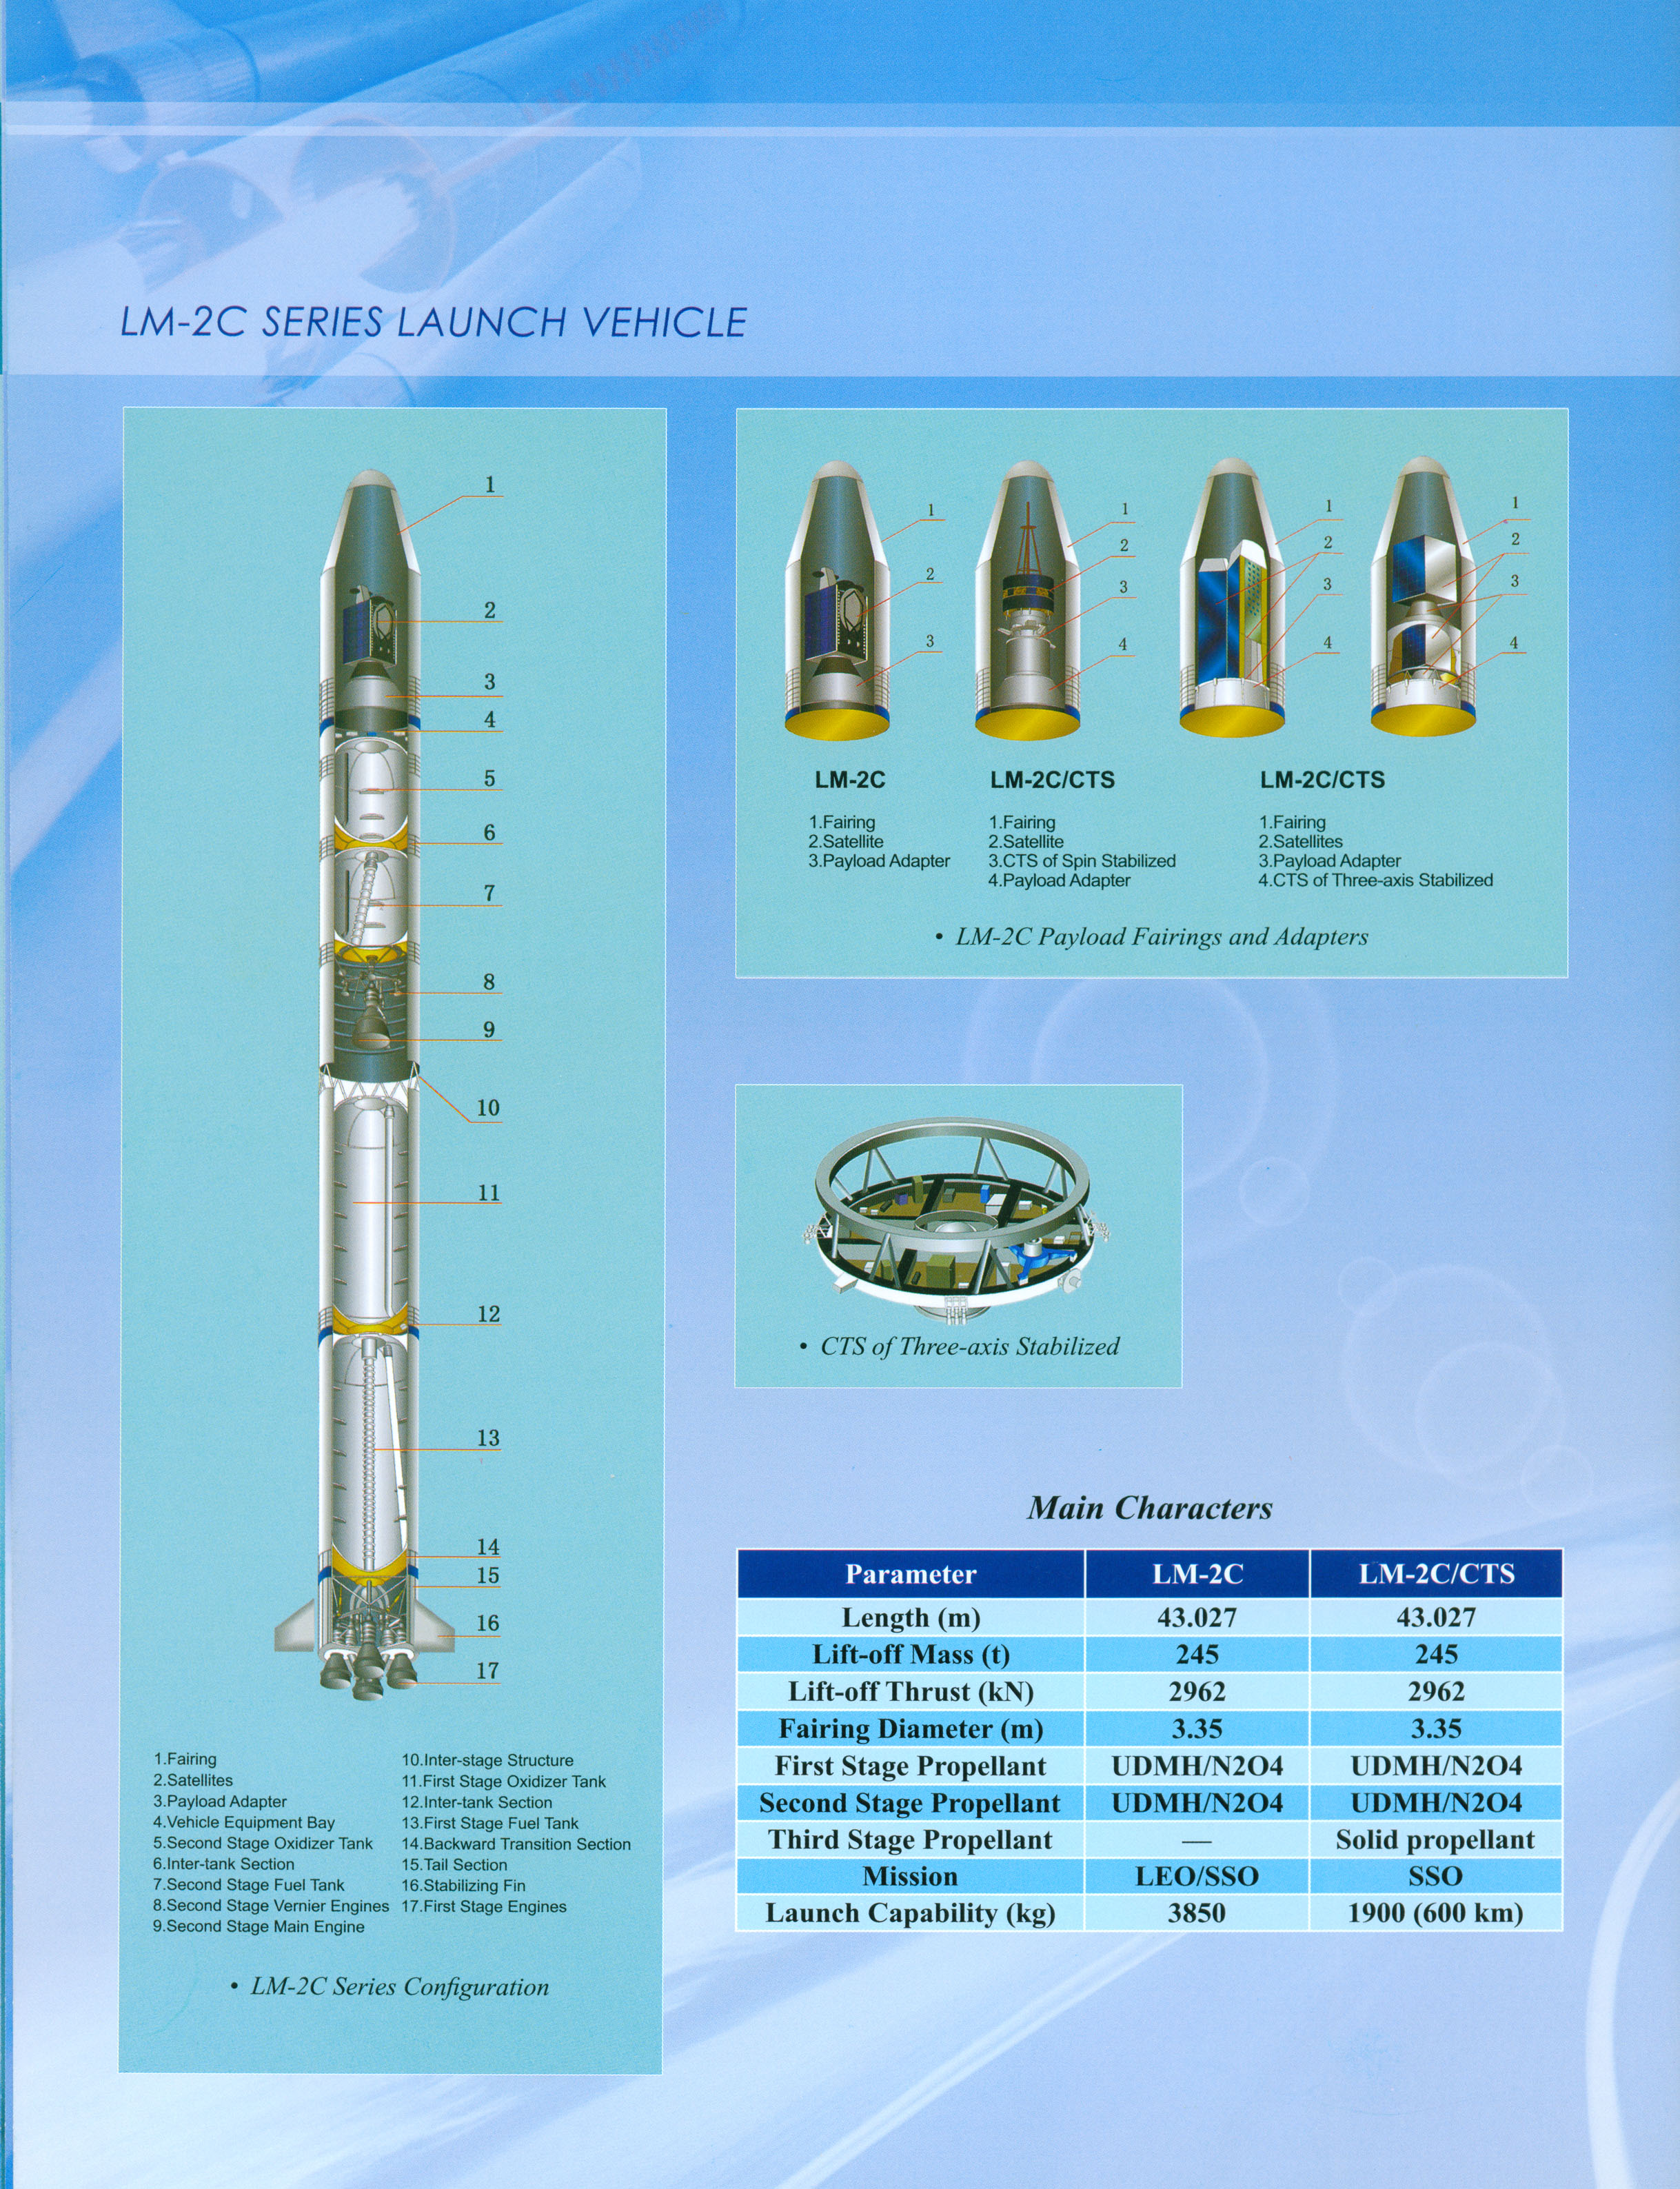 LM-2C SERIES LAUNCH VEHICLE